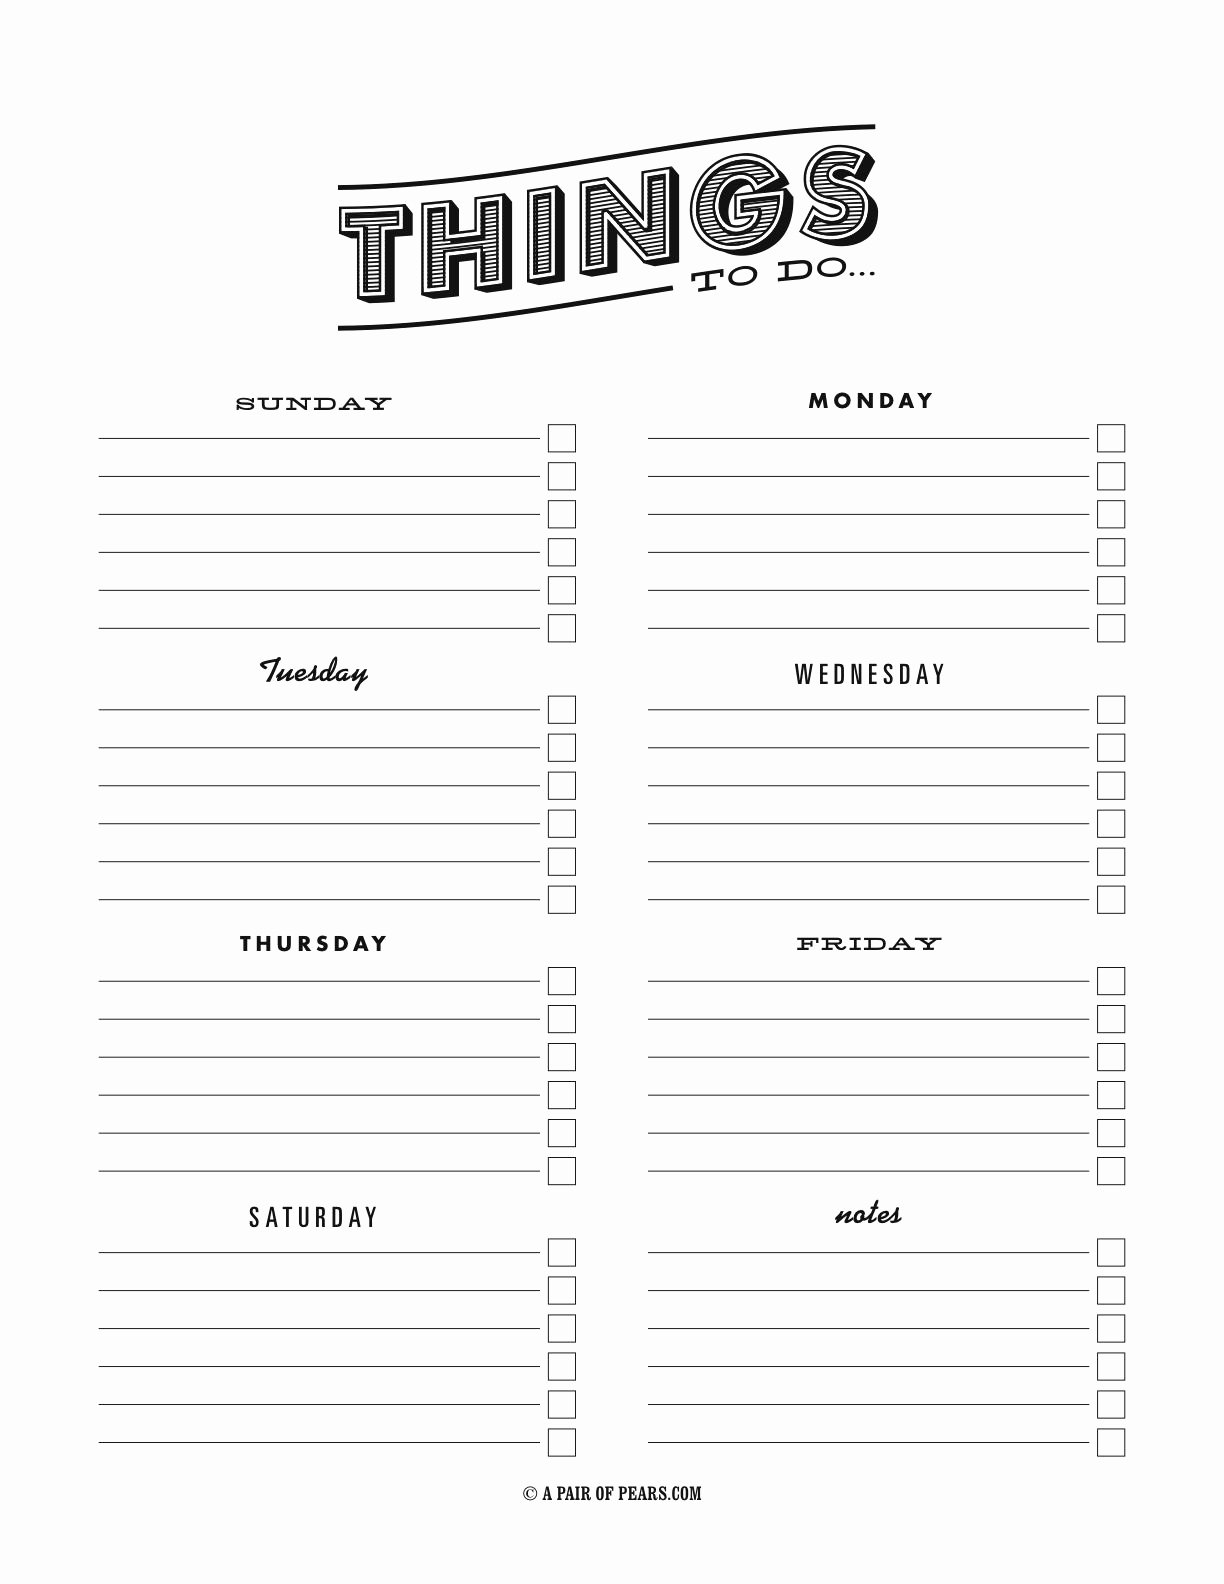 Things to Do List Template Fresh Things to Do Template Pdf Fancy to Do List